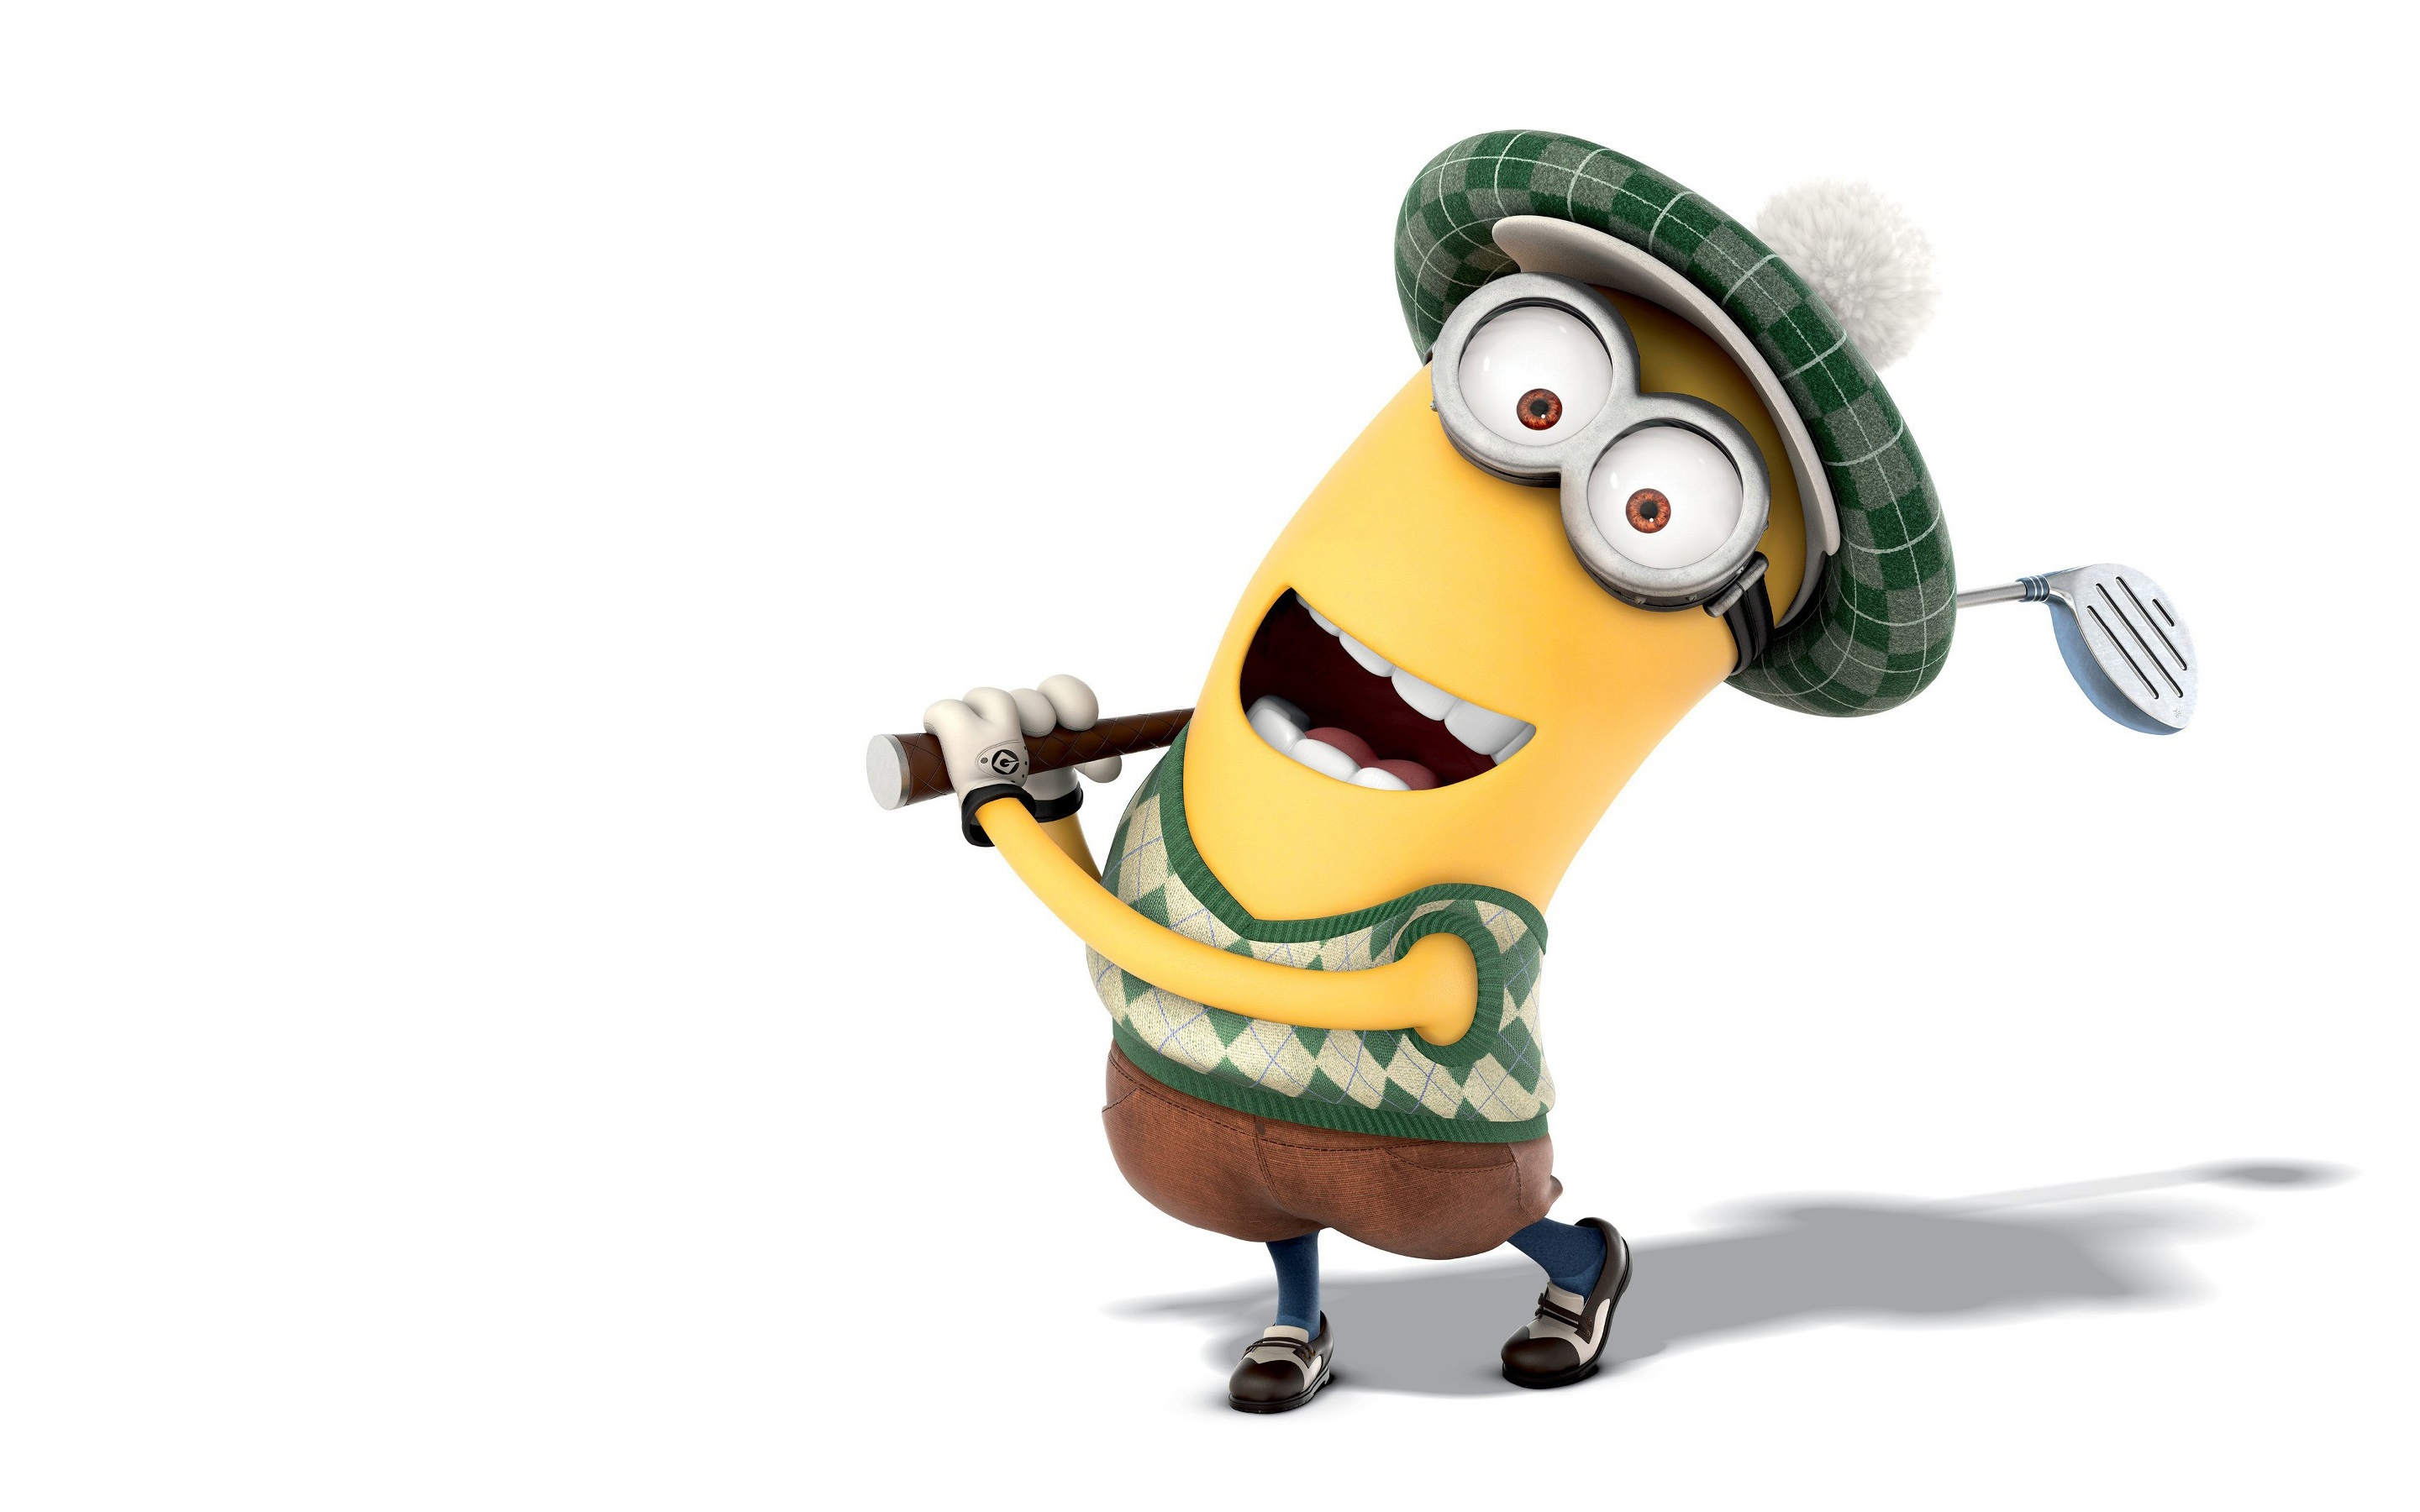 Minion Kevin In Despicable Me 2 HD Wallpaper IHD Wallpapers 2880x1800